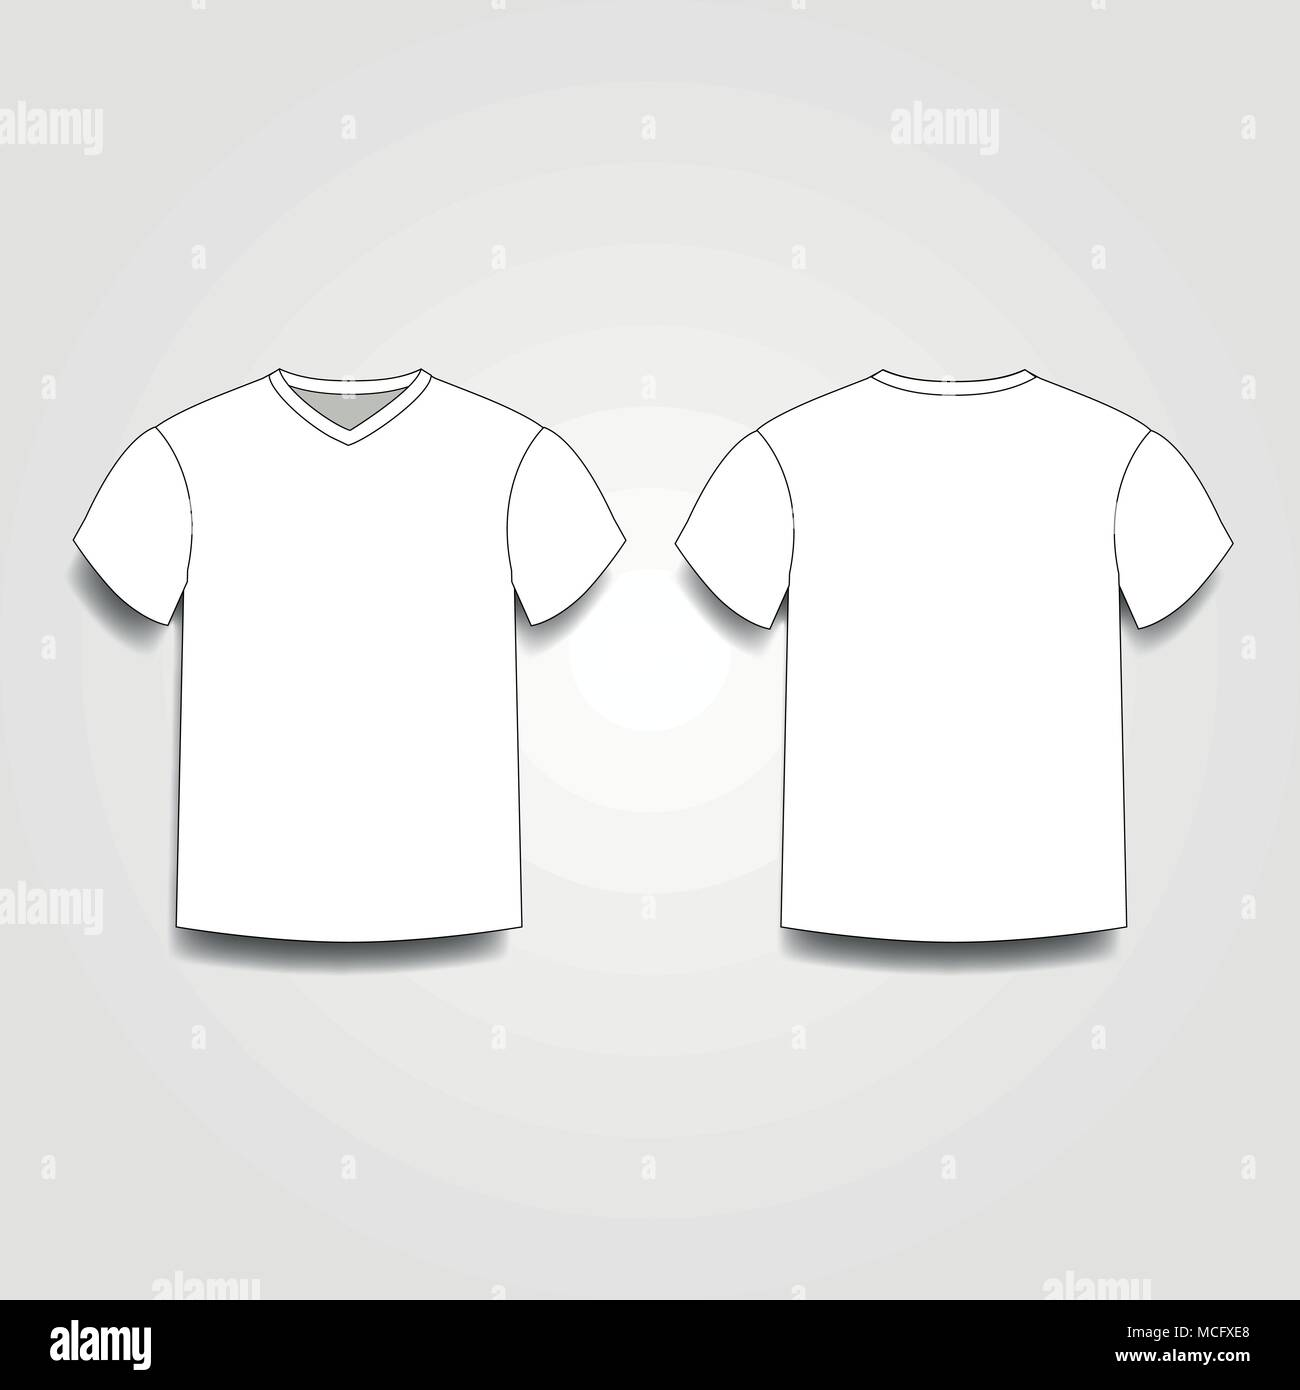 White Mens T Shirt Template V Neck Front And Back Side Views Vector Of Male Wearing Illustration Isolated On Background